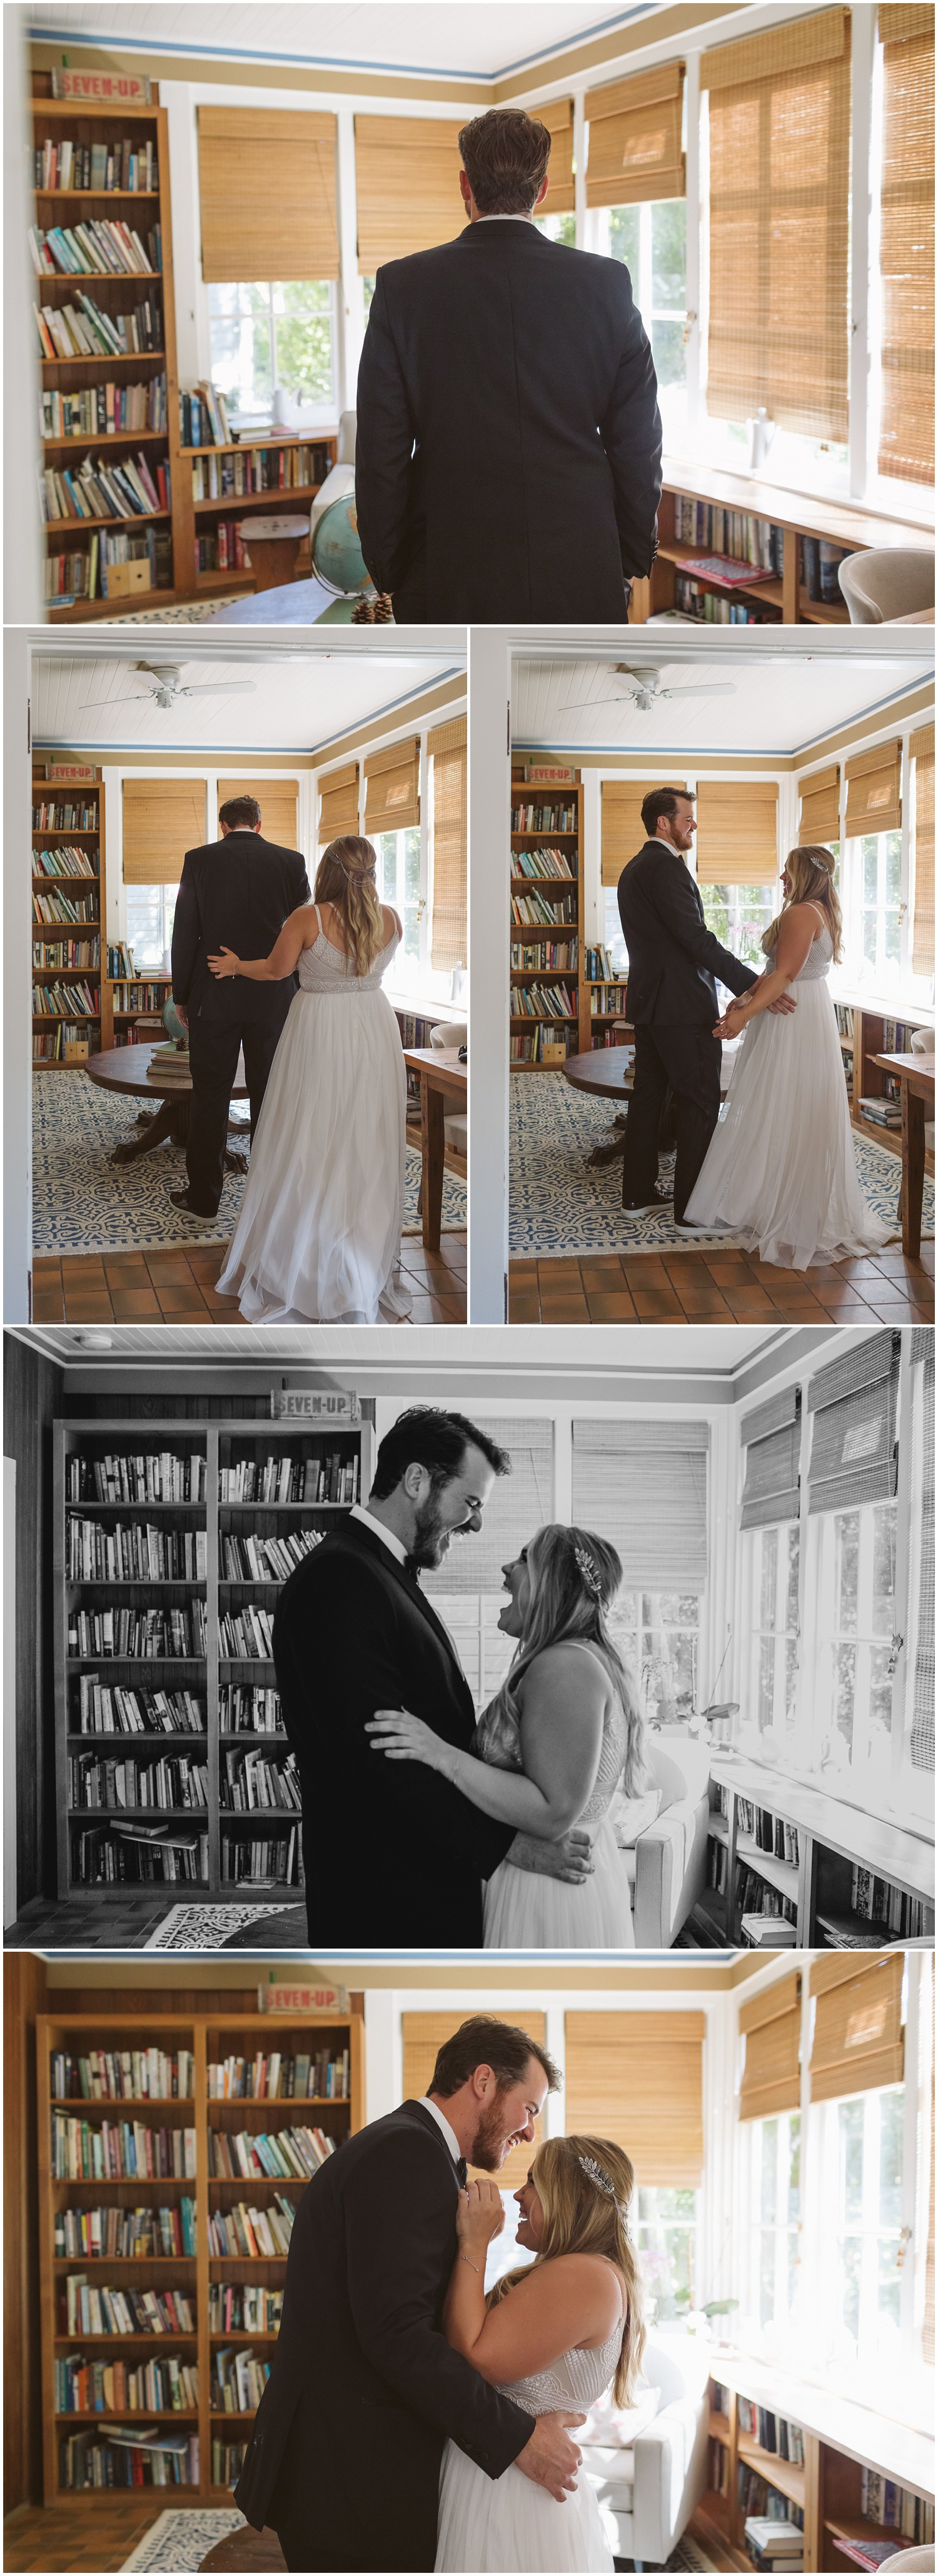 taylor-and-brian-point-reyes-seashore-californiasaltwater-oyster-house-intimate-wedding